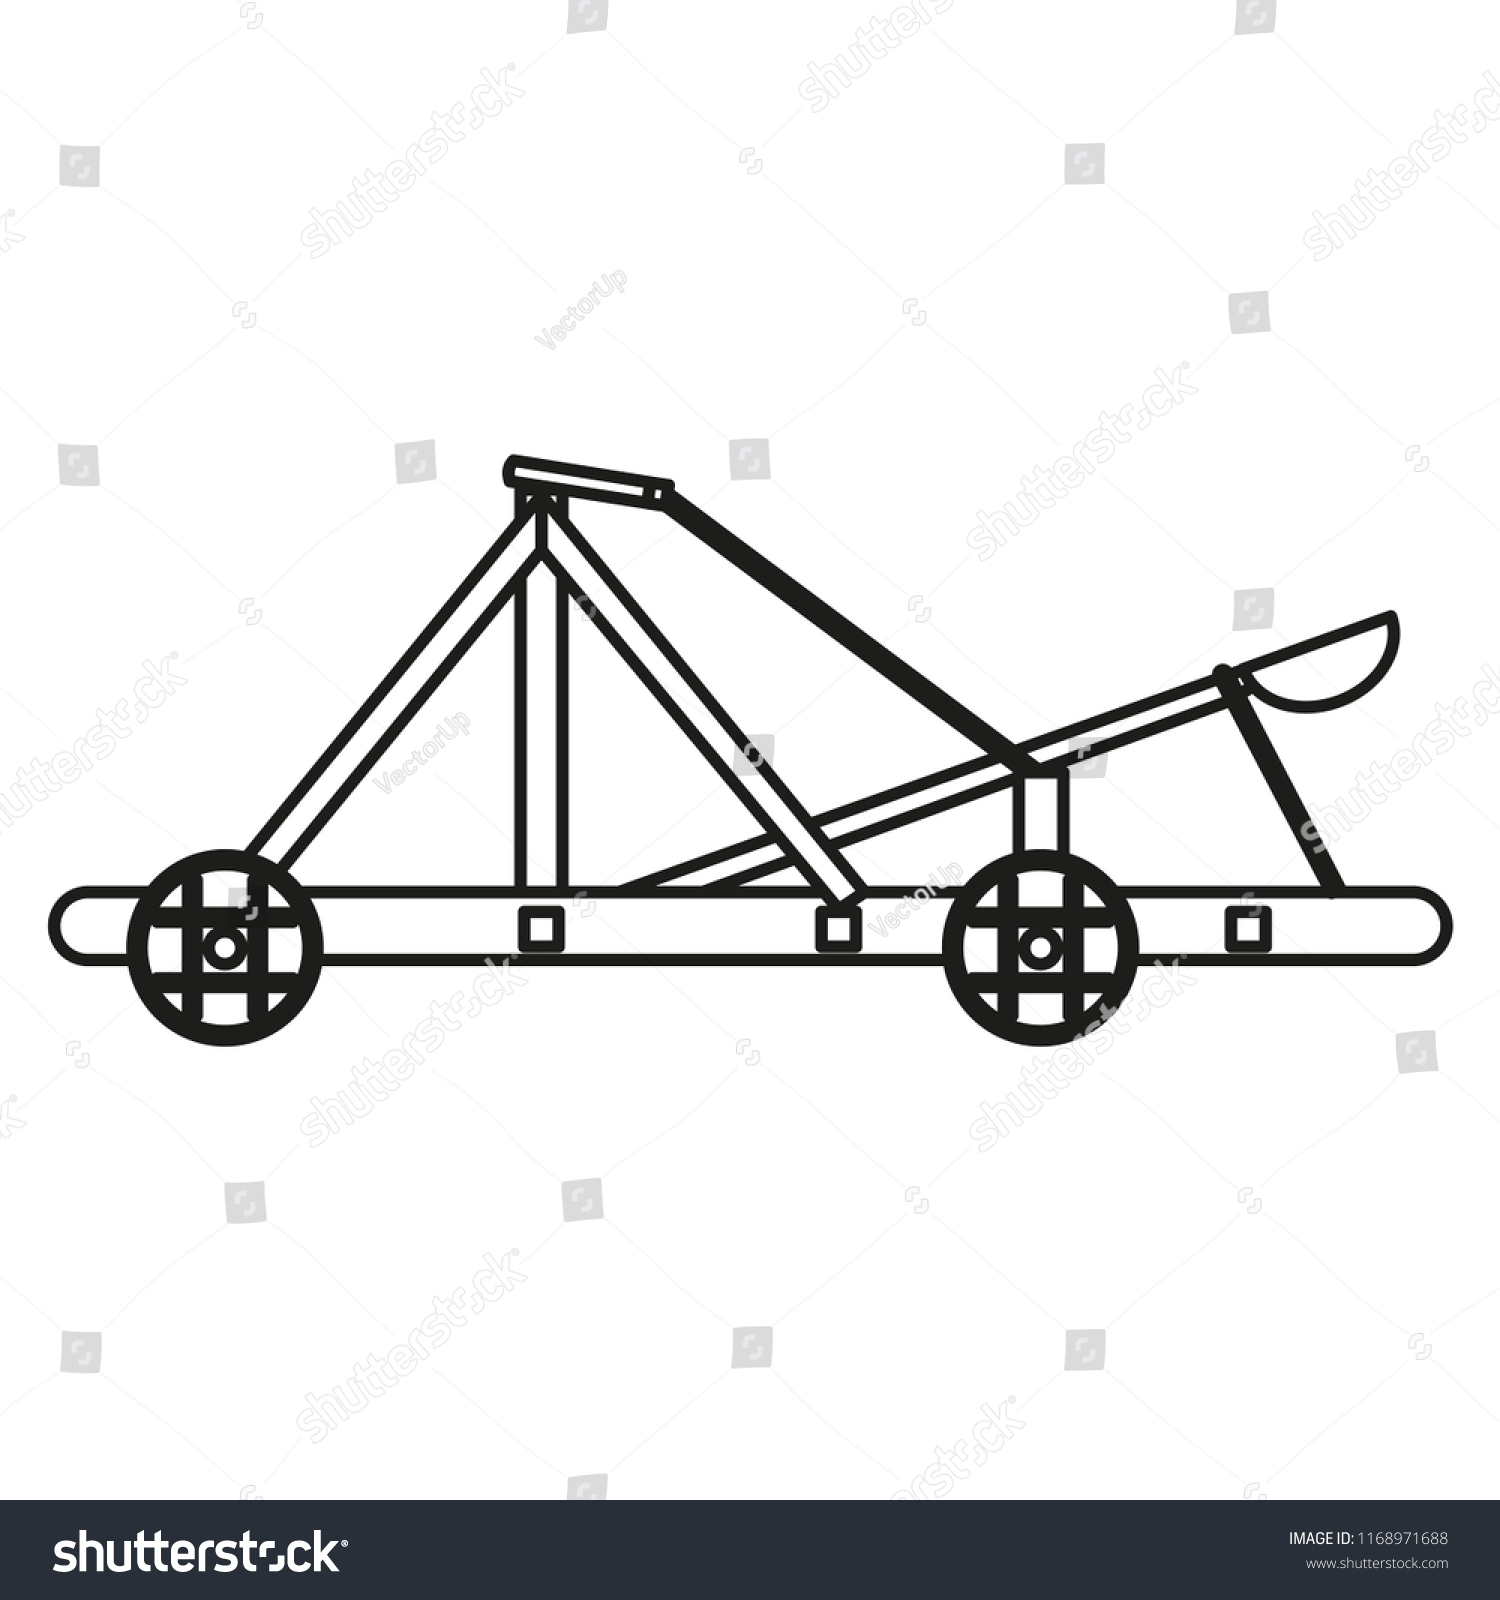 Catapult Line Icon Isolated On White Stock Vector Royalty Free Diagram Background Outline Thin Pictogram Art Logo